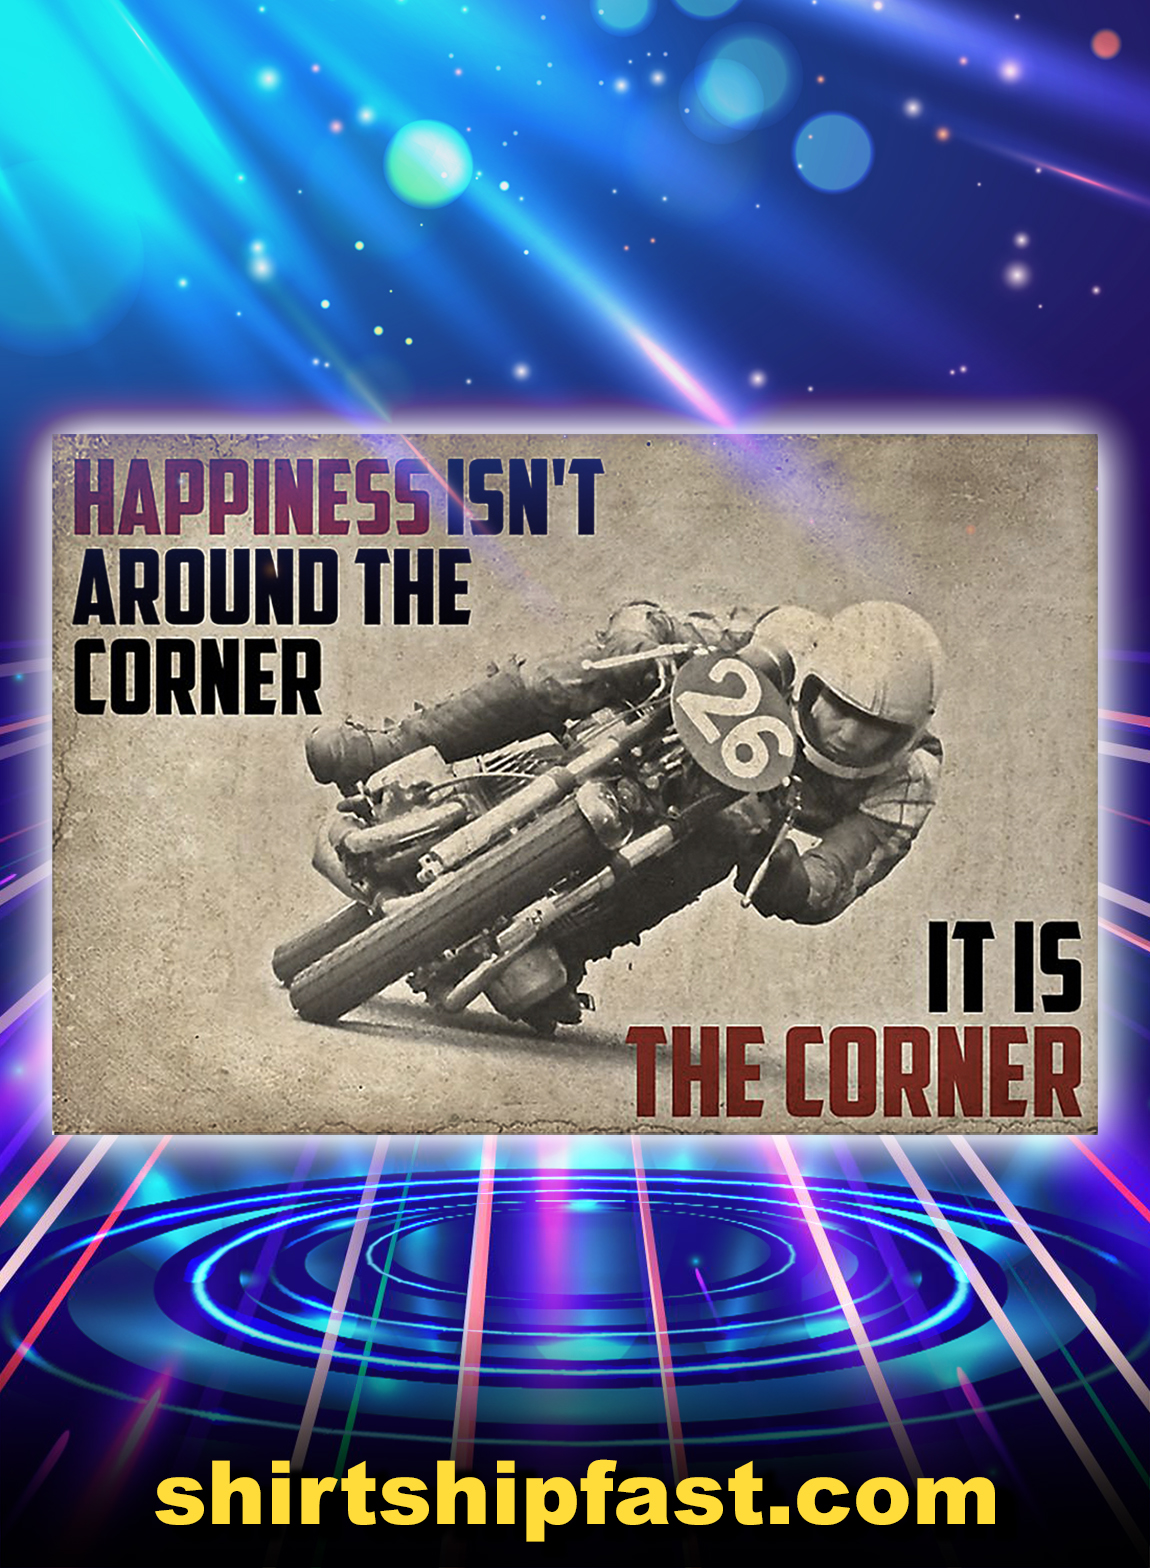 Poster Motorcycle happiness isn't around the corner it is the corner - A3